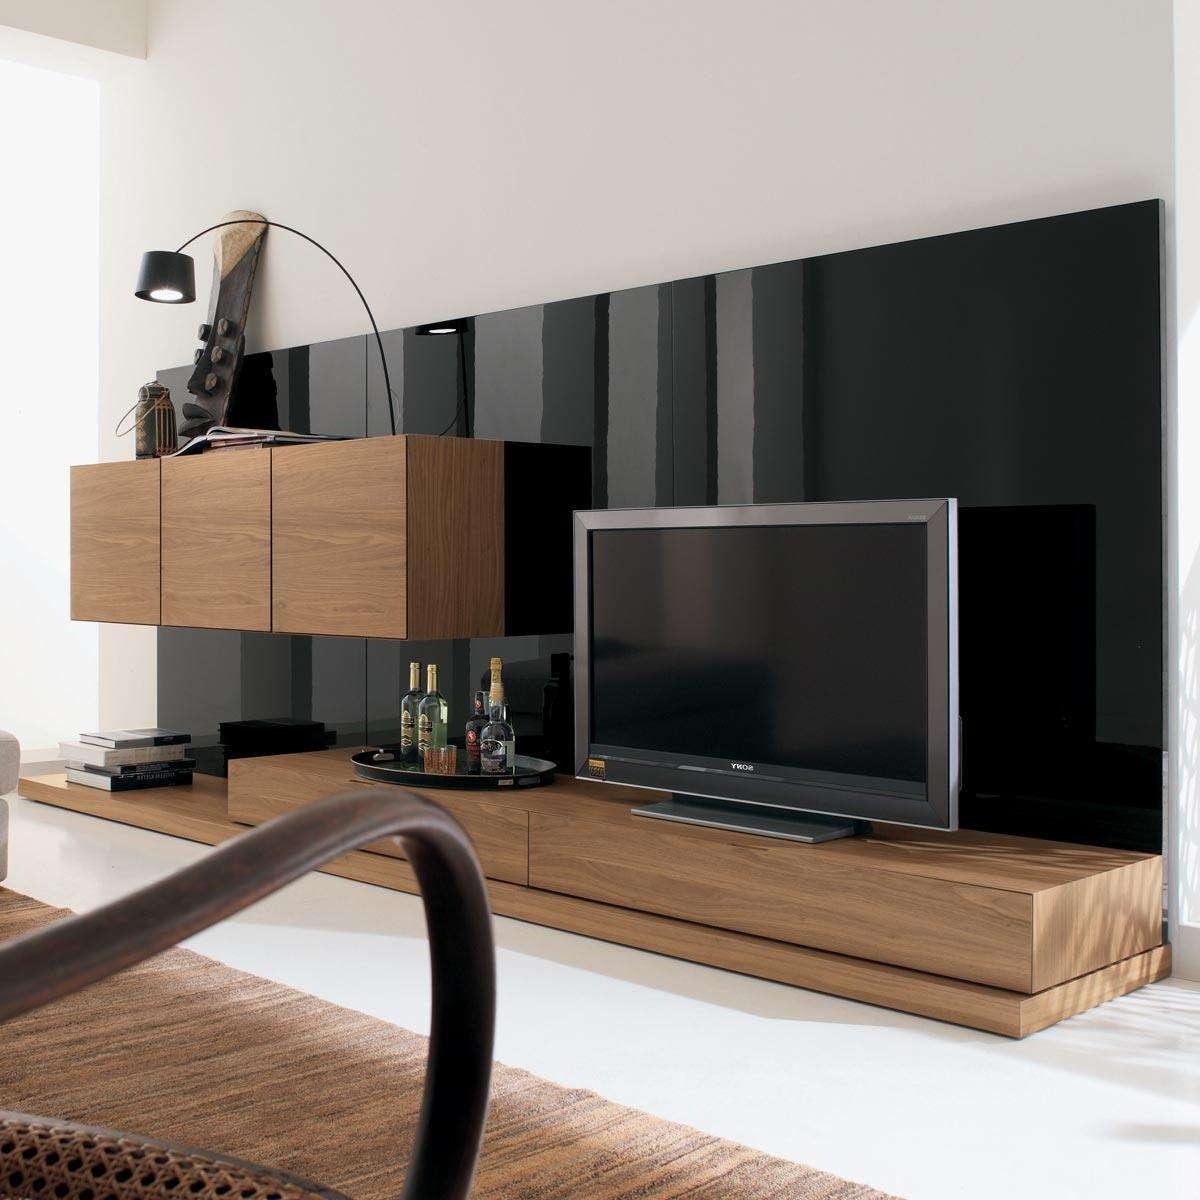 Modern Nature Wood Big Screen Tv Stand Wall Mounted Living Room Throughout Long Wood Tv Stands (View 9 of 15)